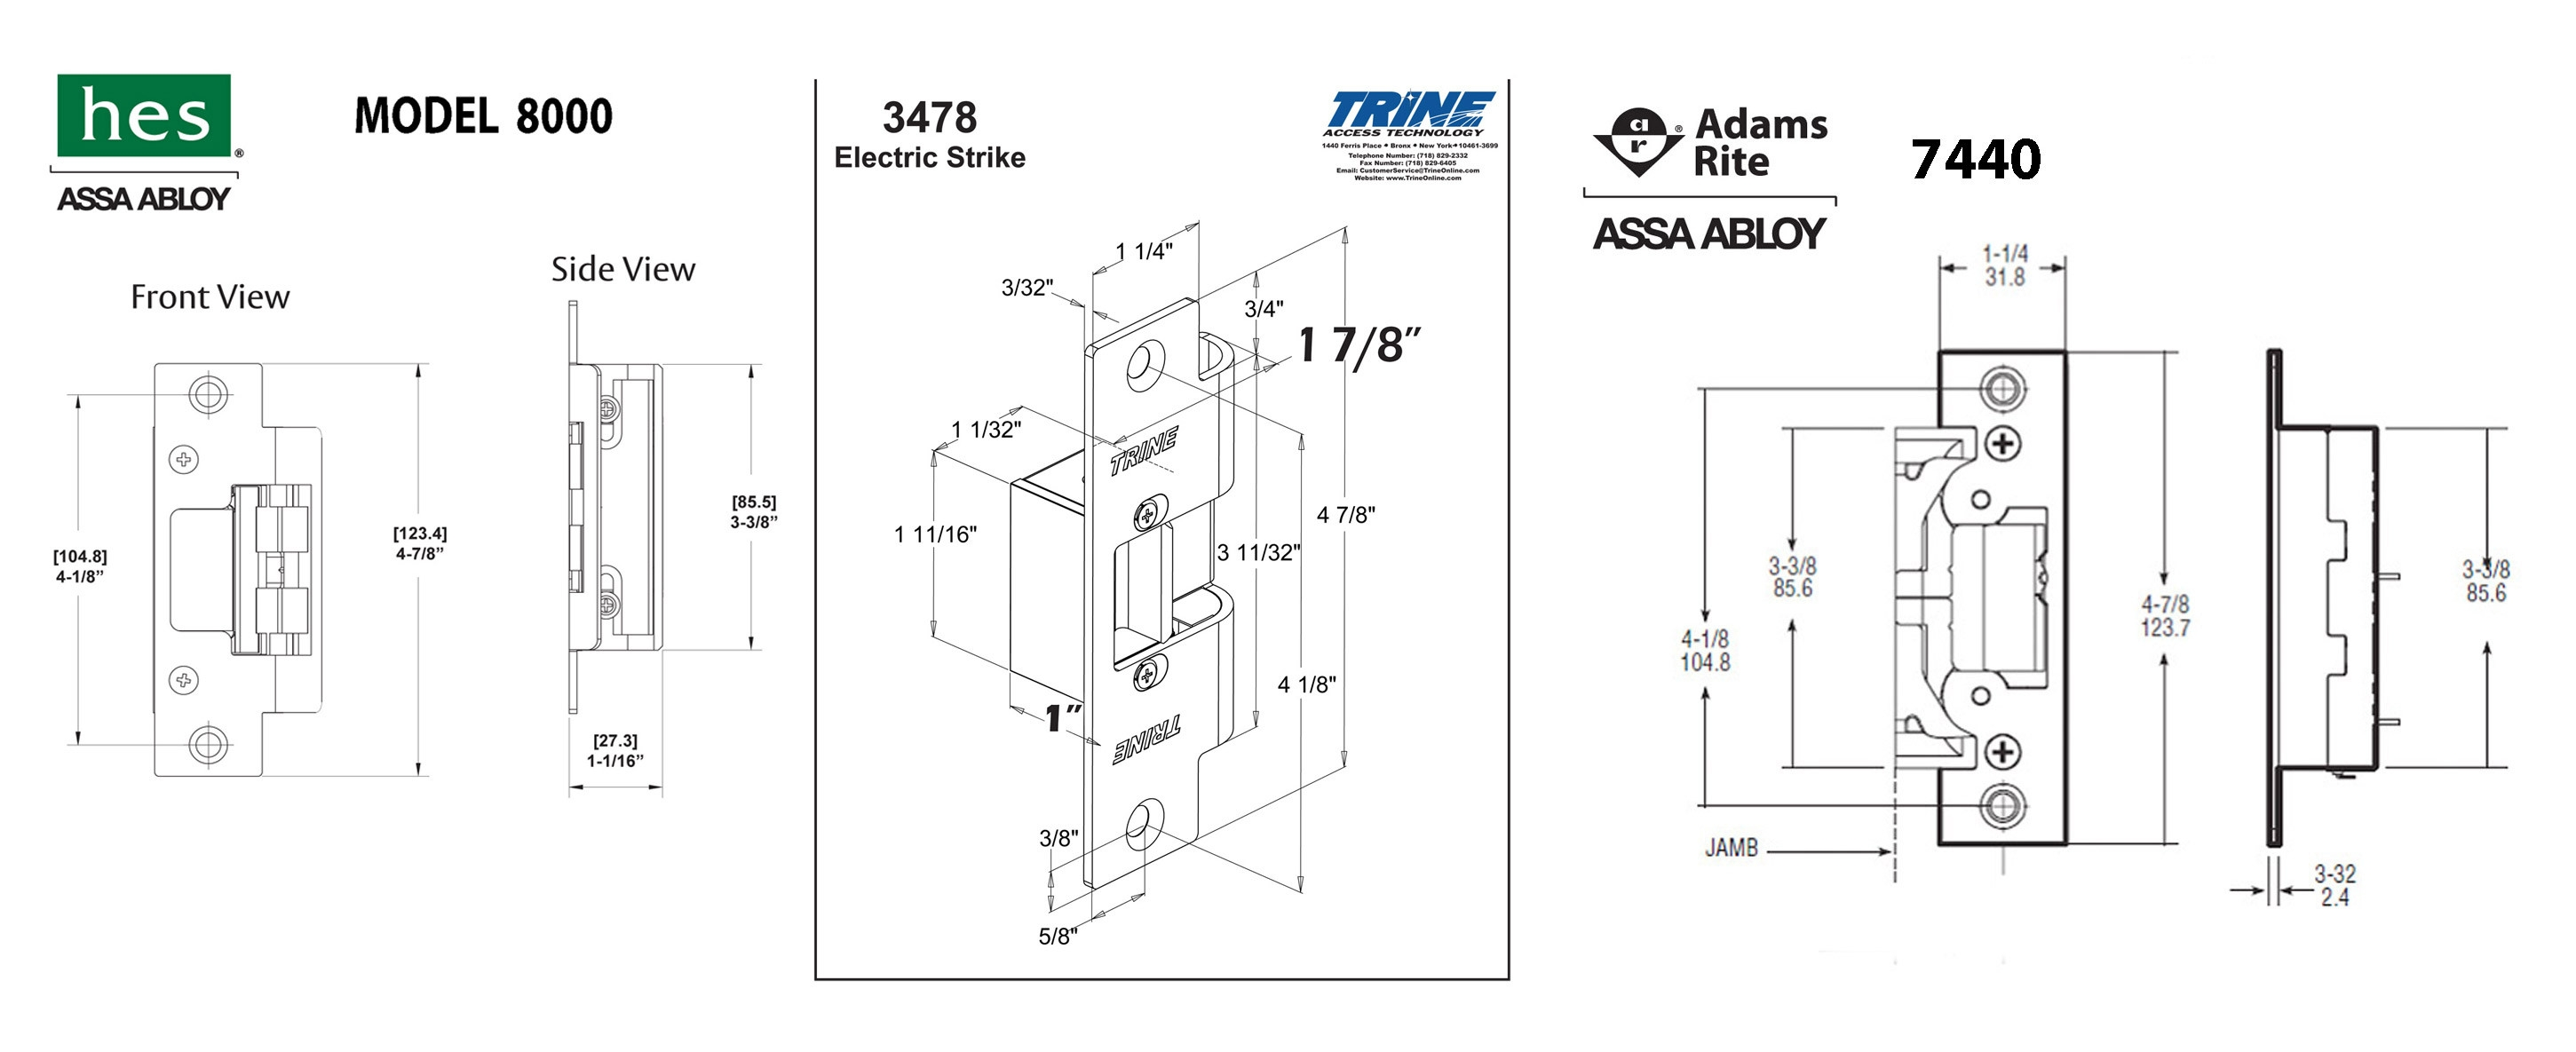 adams rite electric strike wiring diagram Collection-Wiring Diagram for Magnetic Door Lock Fresh Hes 5000 Series Electric Strike Wiring Diagram 11-f